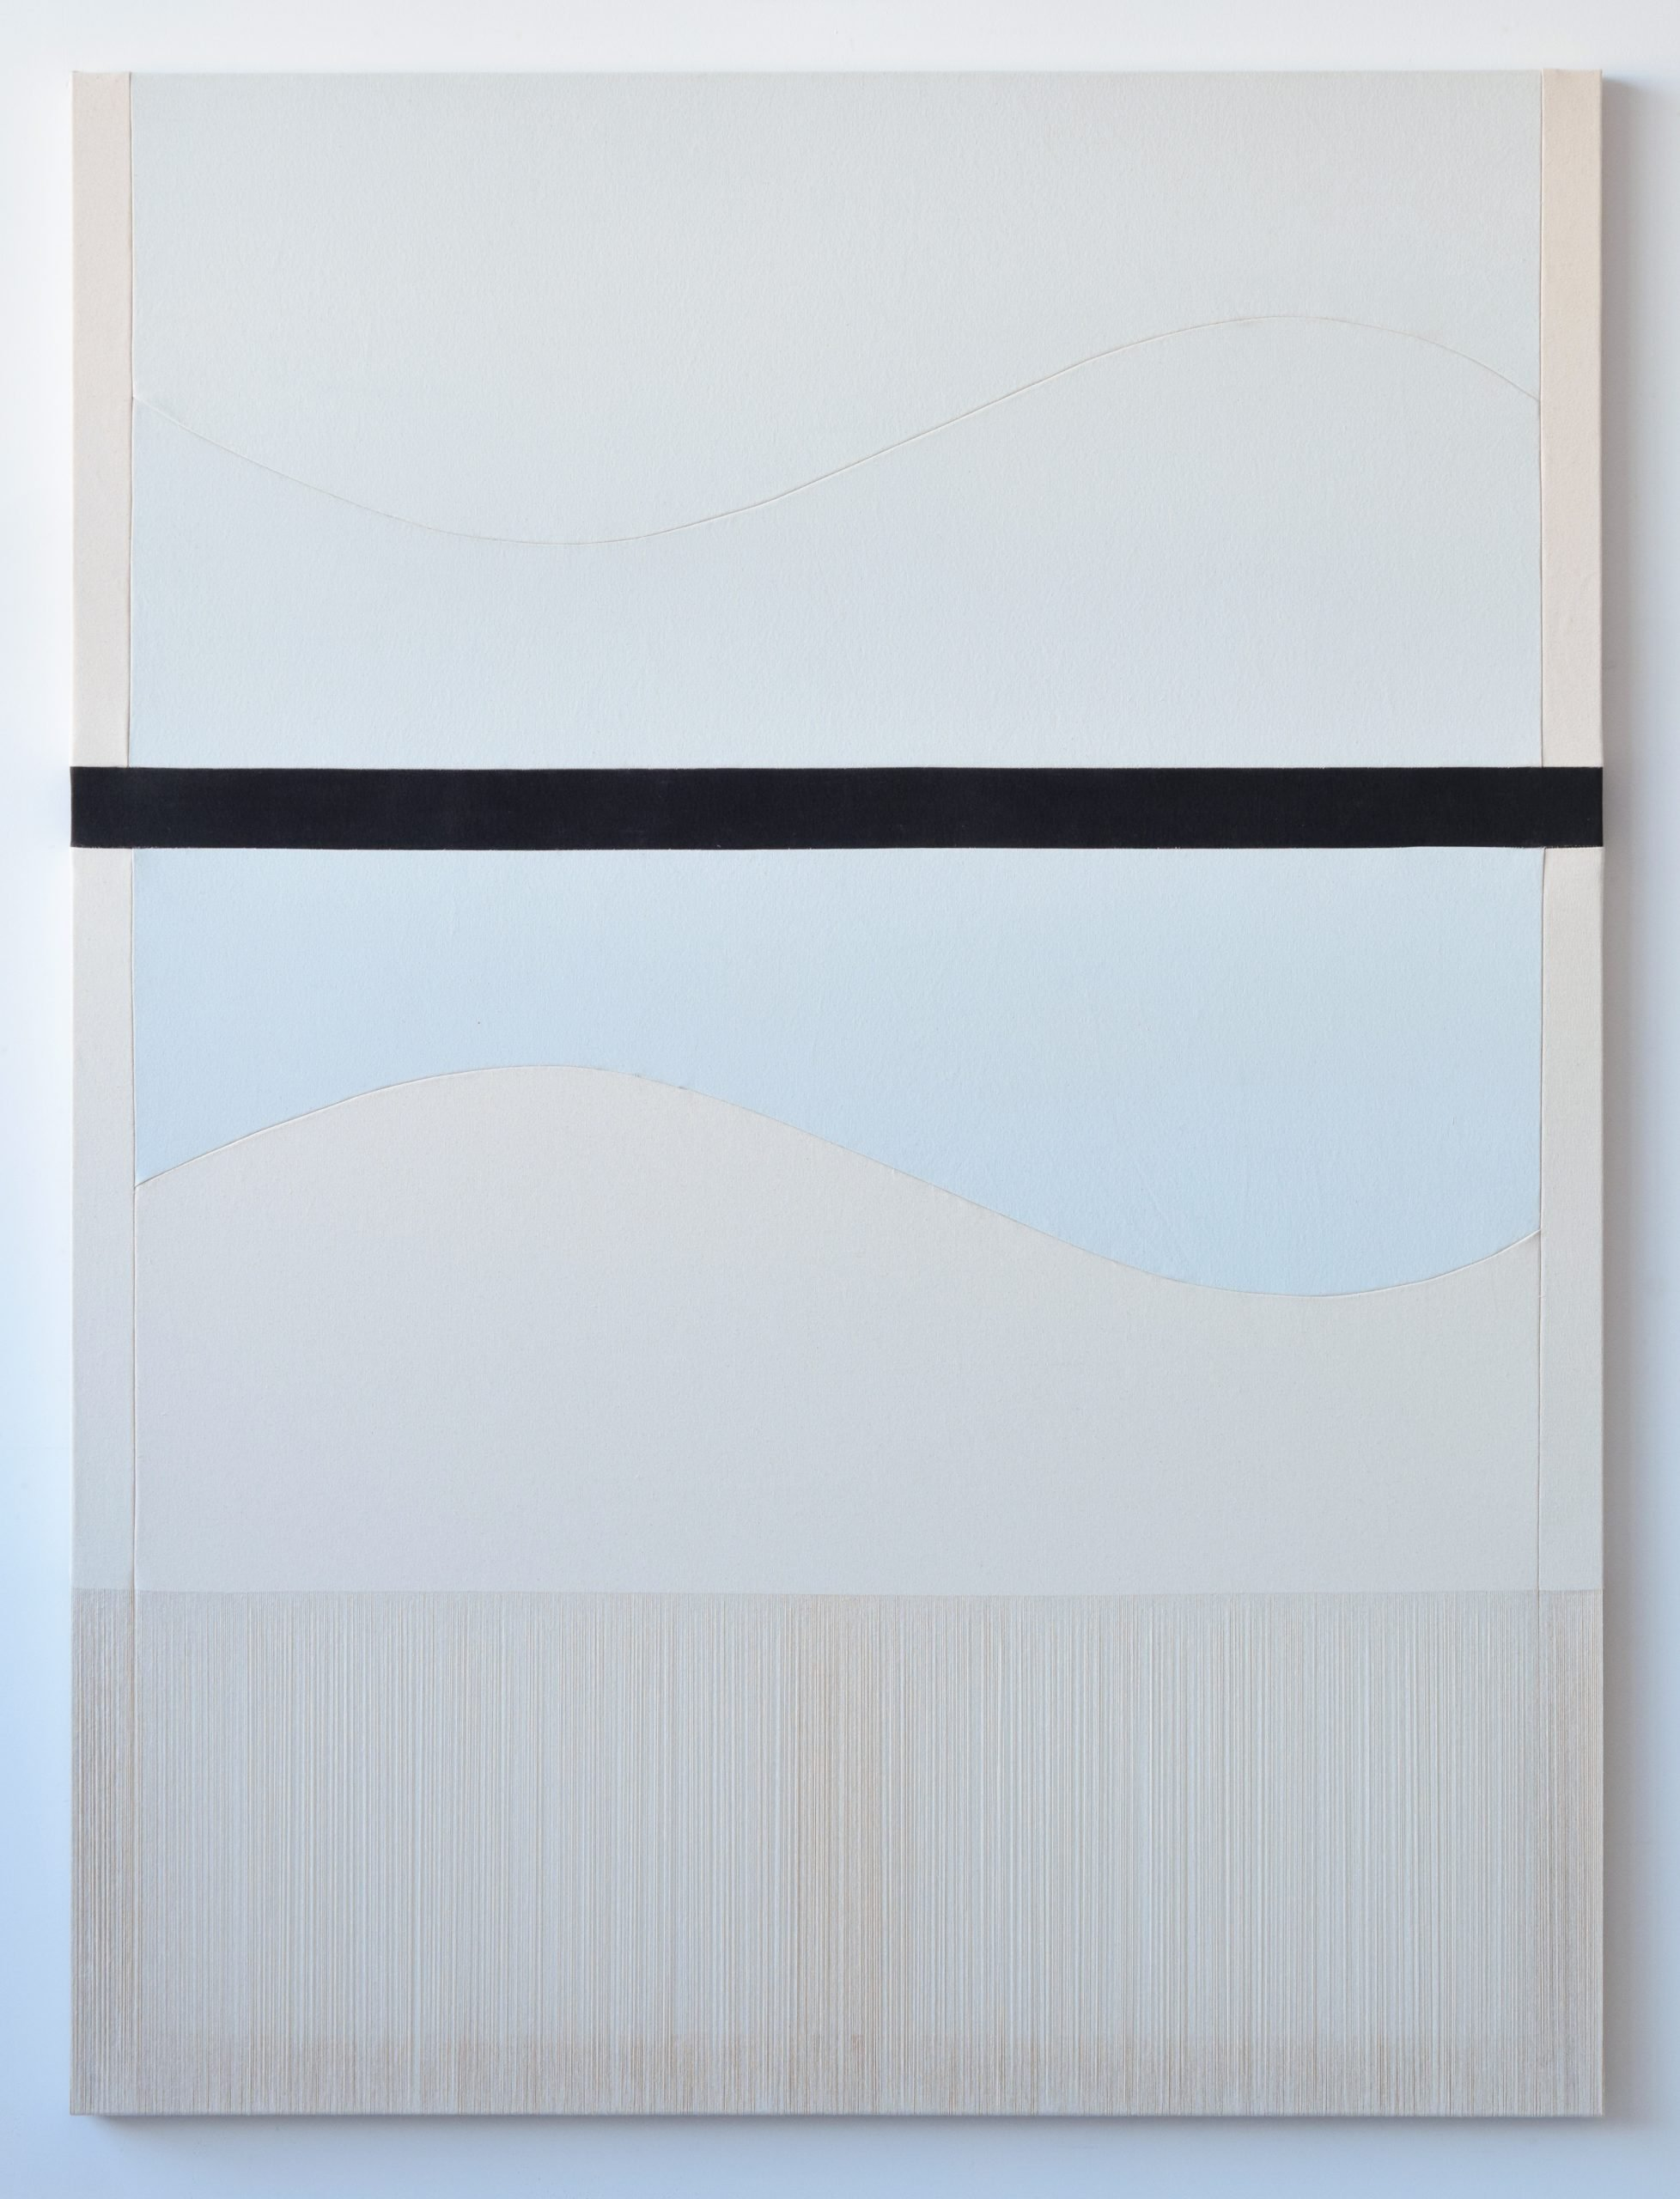 Rebecca Ward, sideways, 2019, acrylic on stitched canvas, 64 x 48 in, 162.6 x 121.9 cm, (RWa302536)